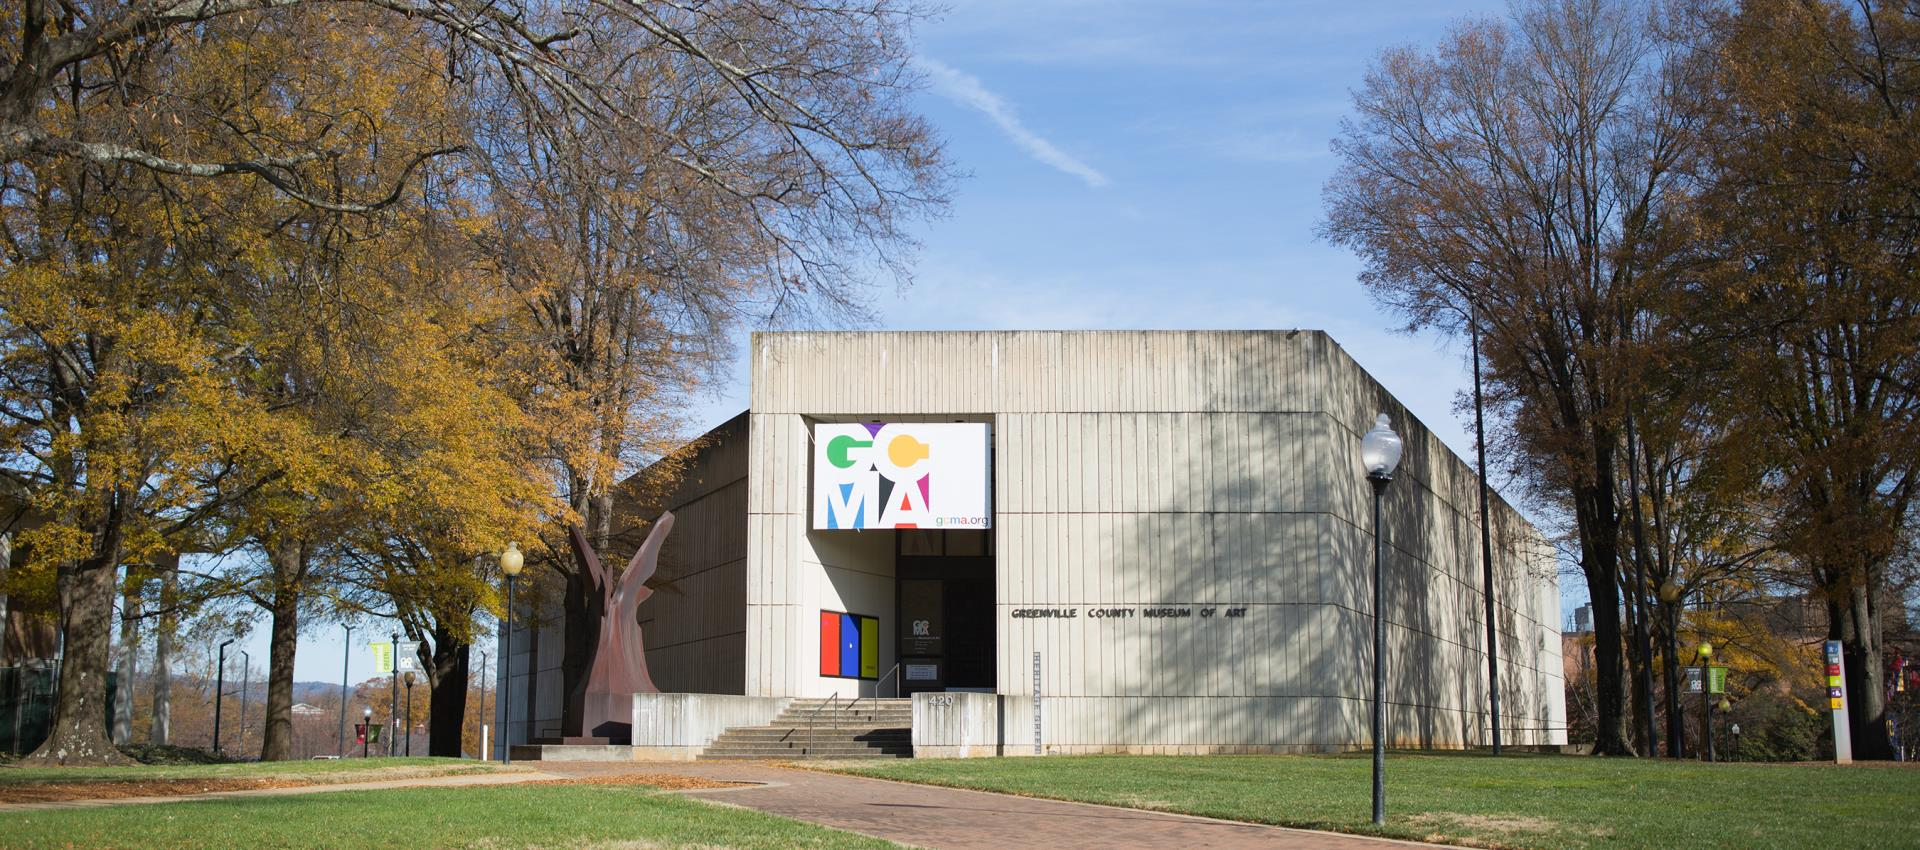 Home :: Greenville County Museum of Art